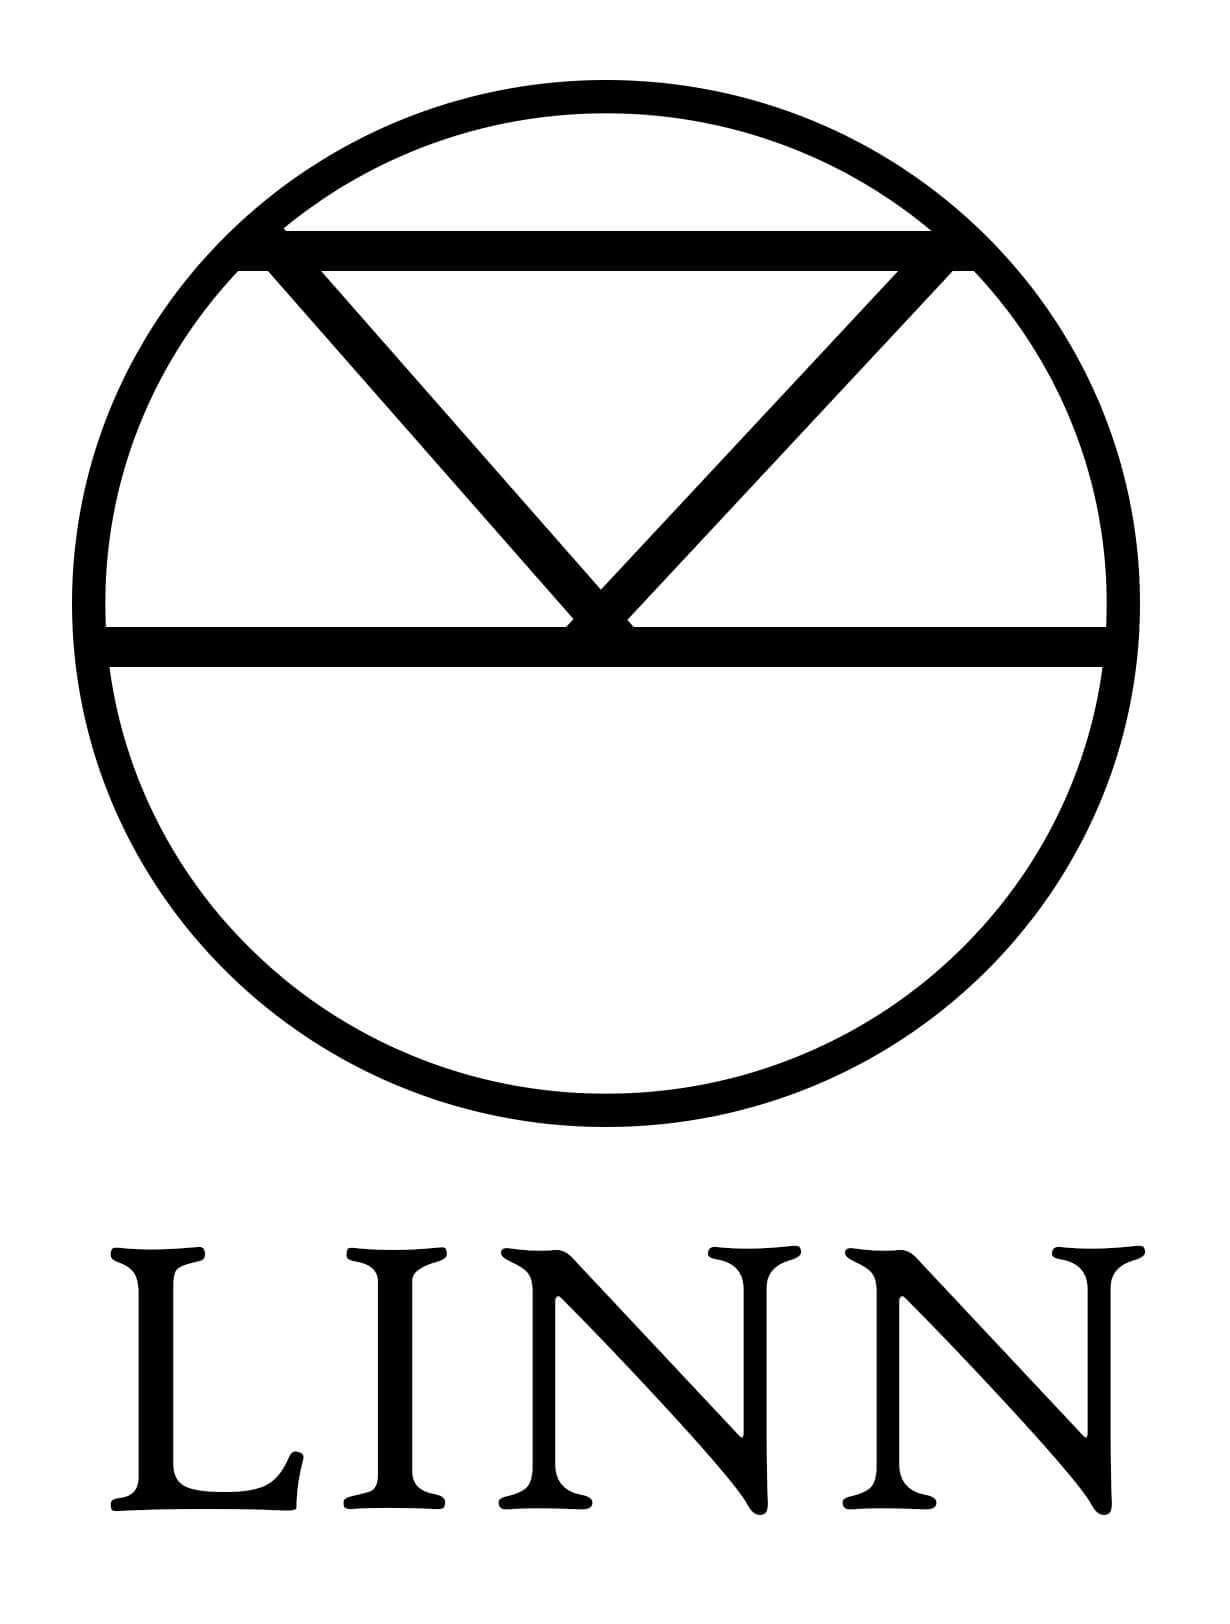 More information about Linn